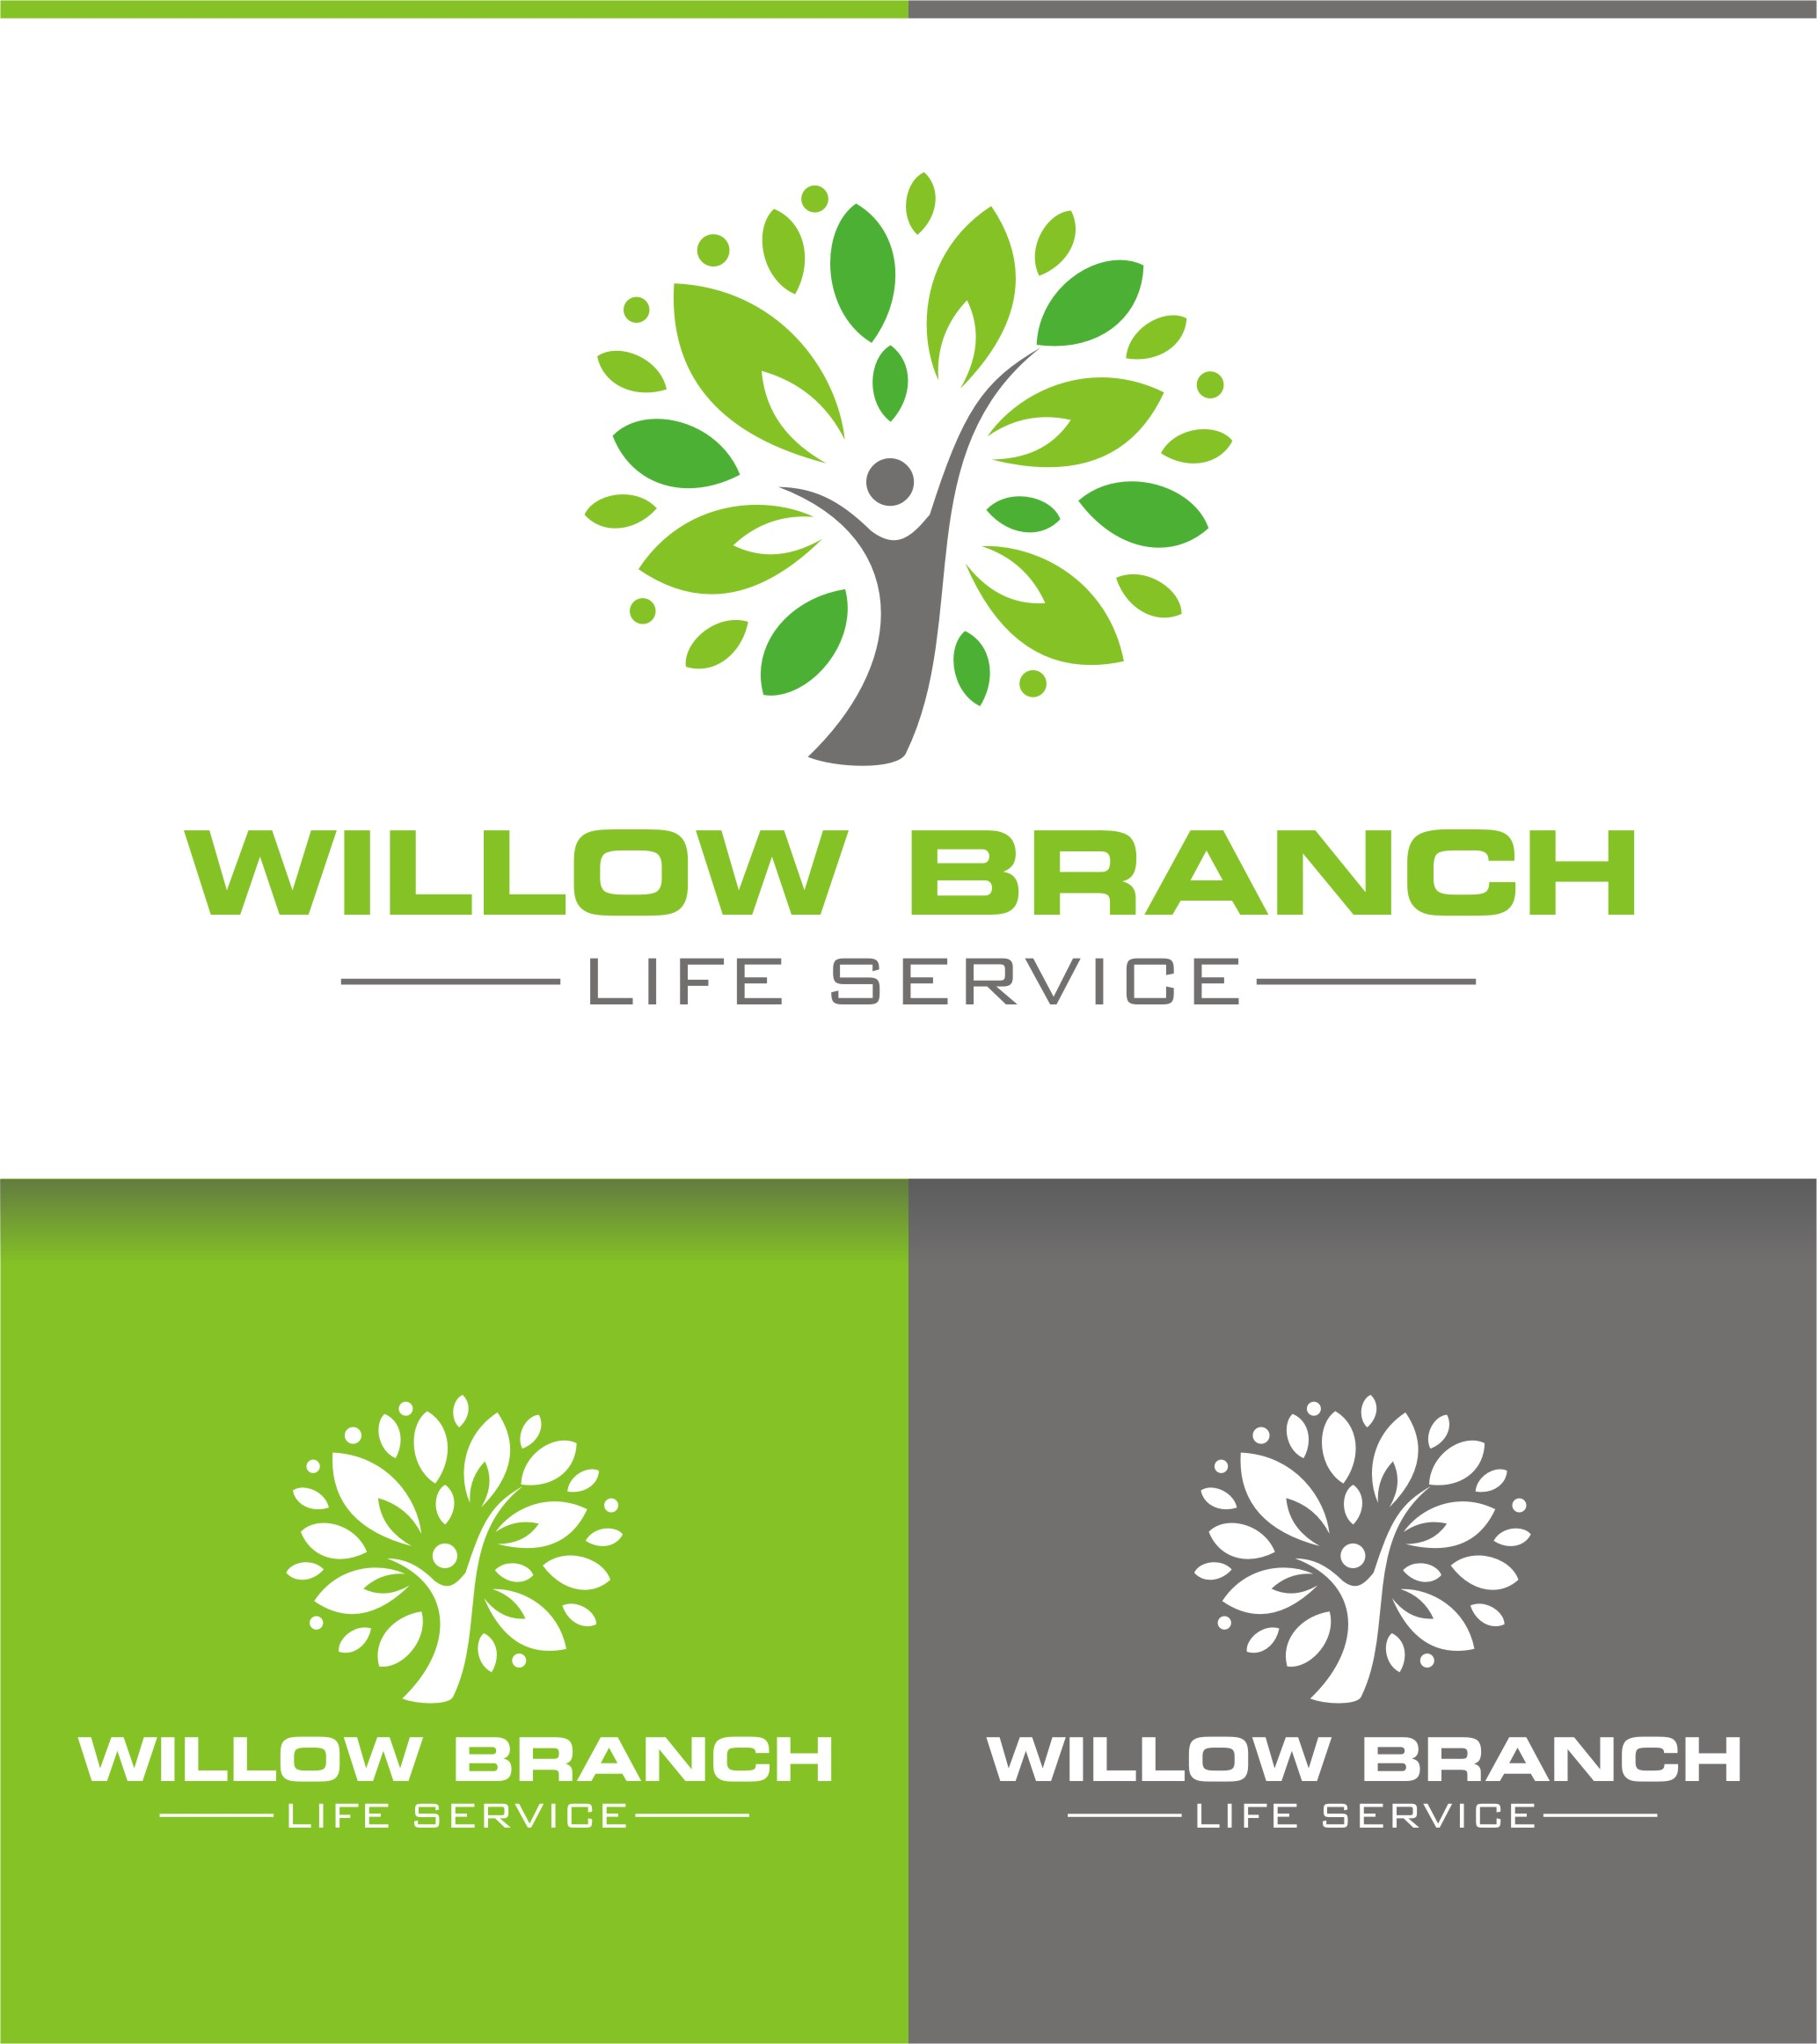 Logo Design by Spider Graphics - Entry No. 218 in the Logo Design Contest Artistic Logo Design for Willow Branch Life Service.